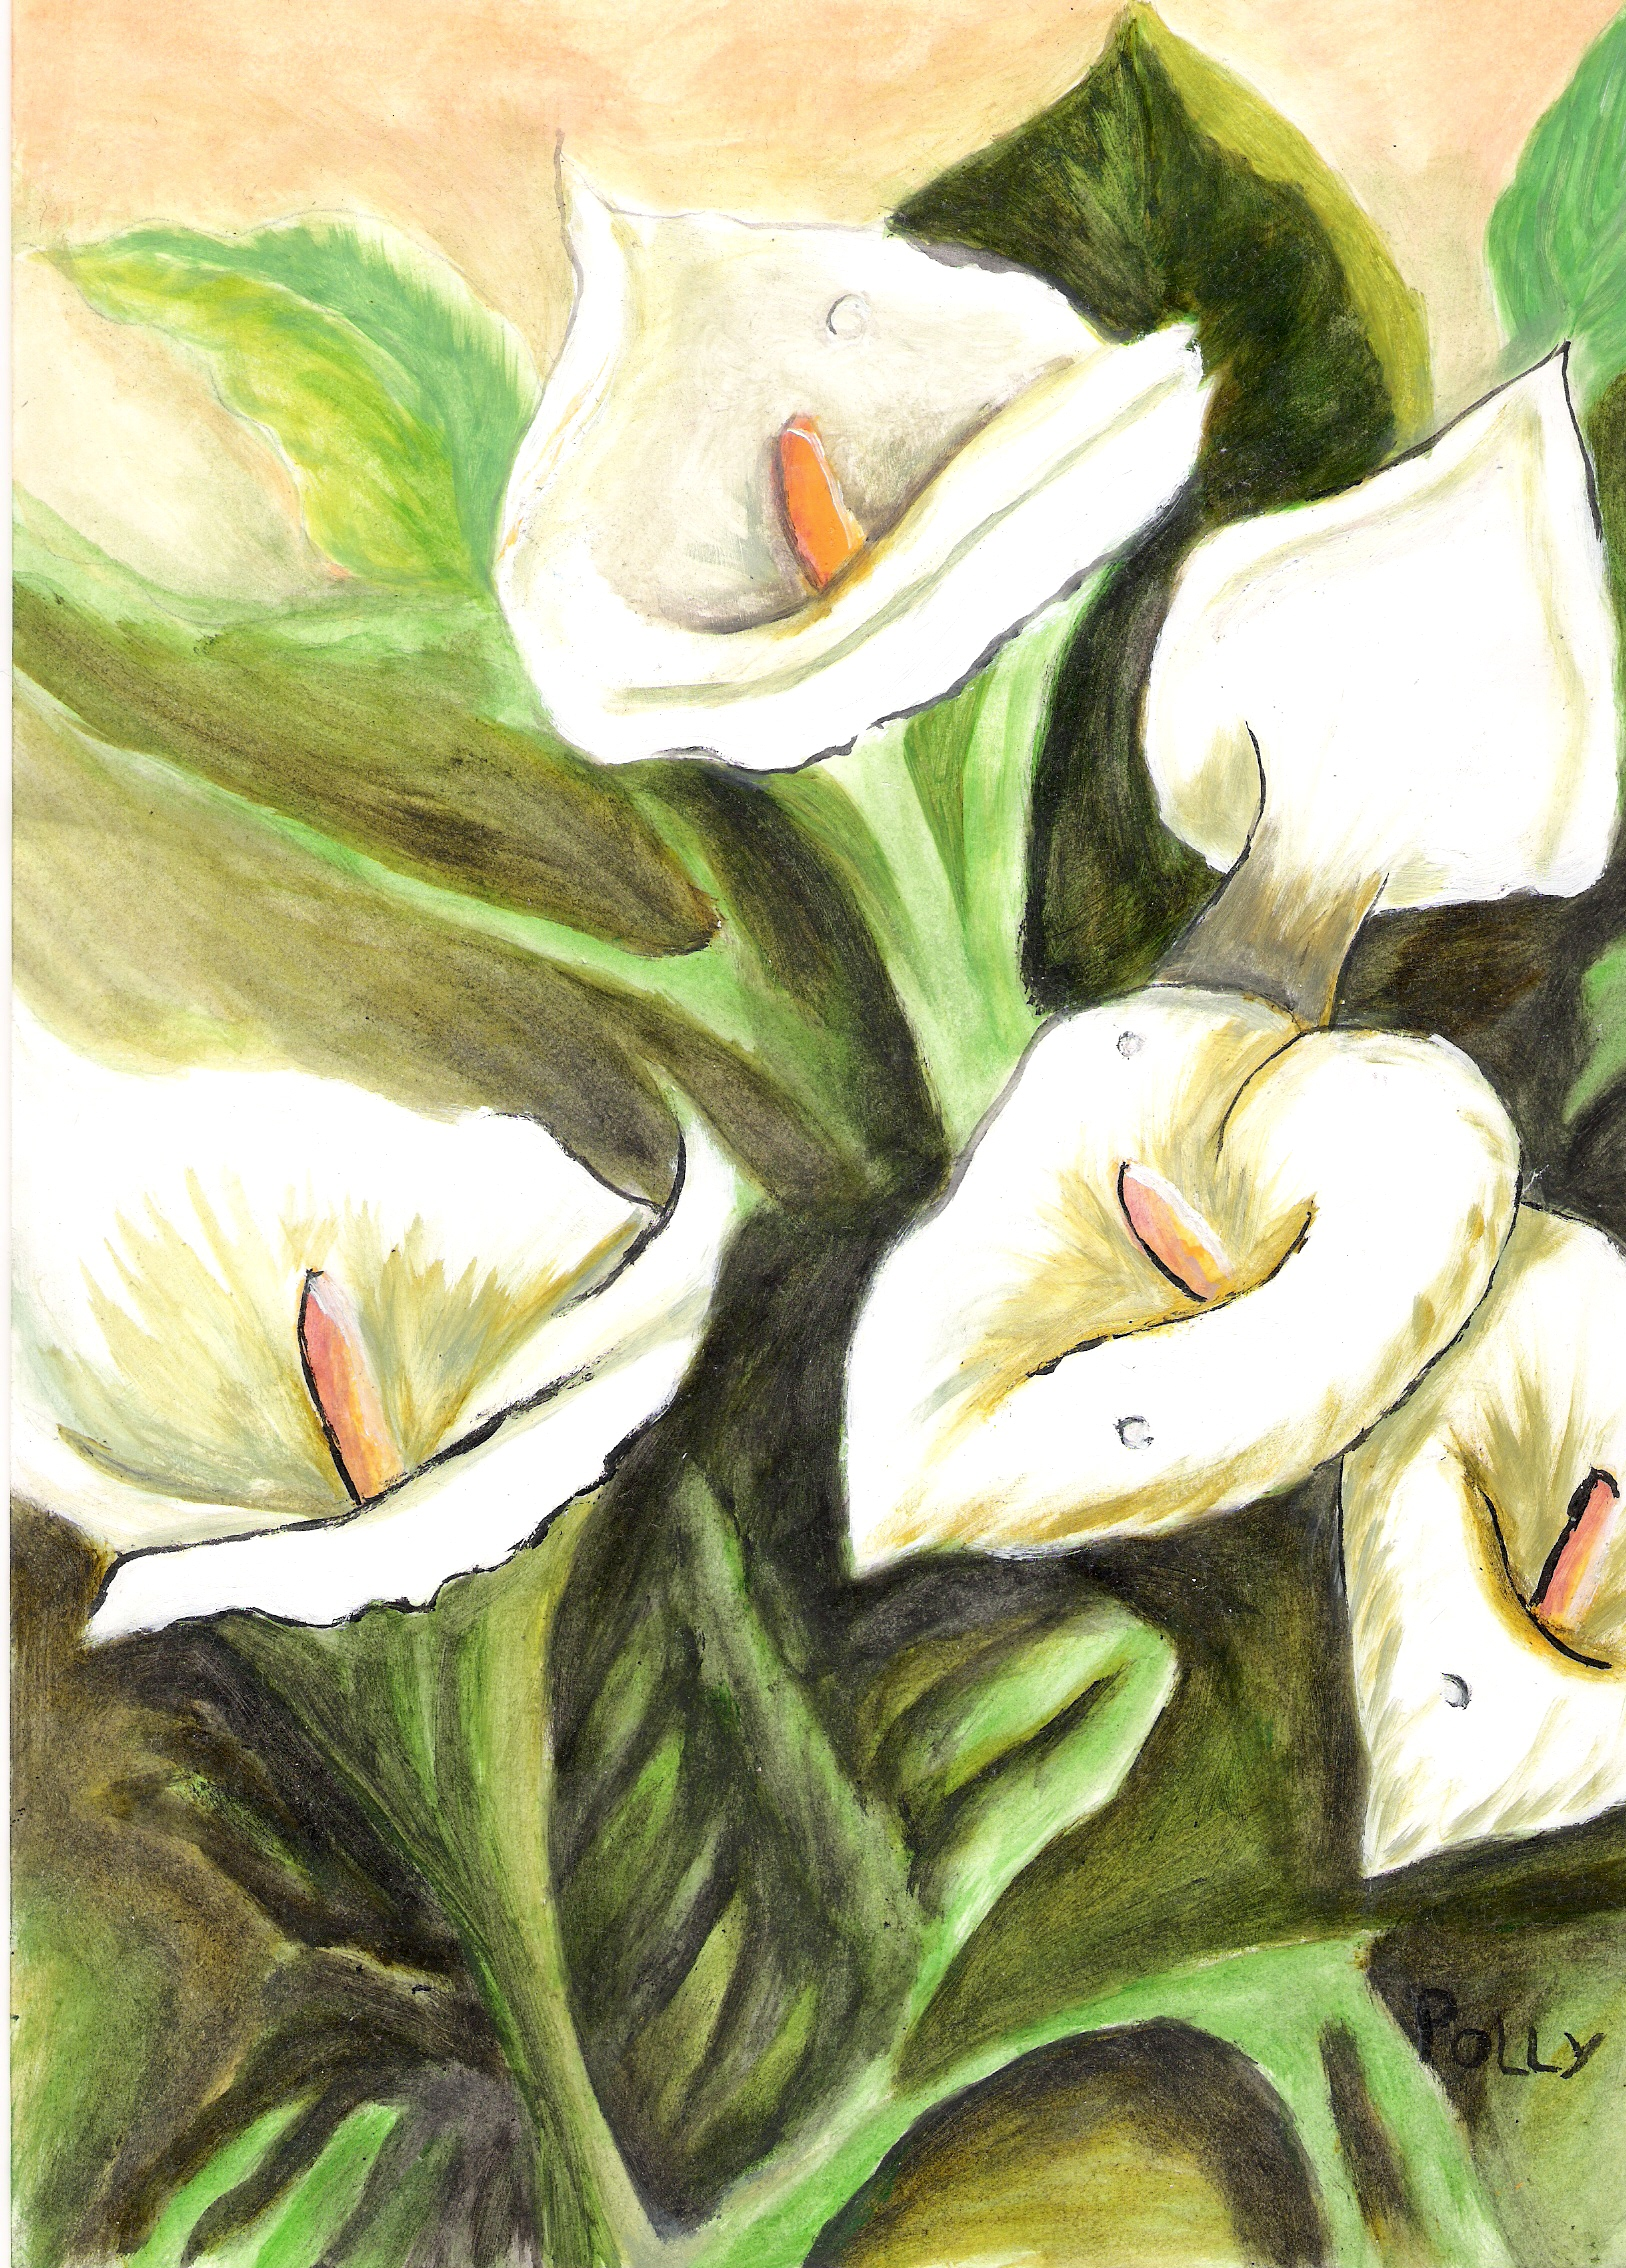 Painted flowers by pollys2 on DeviantArt